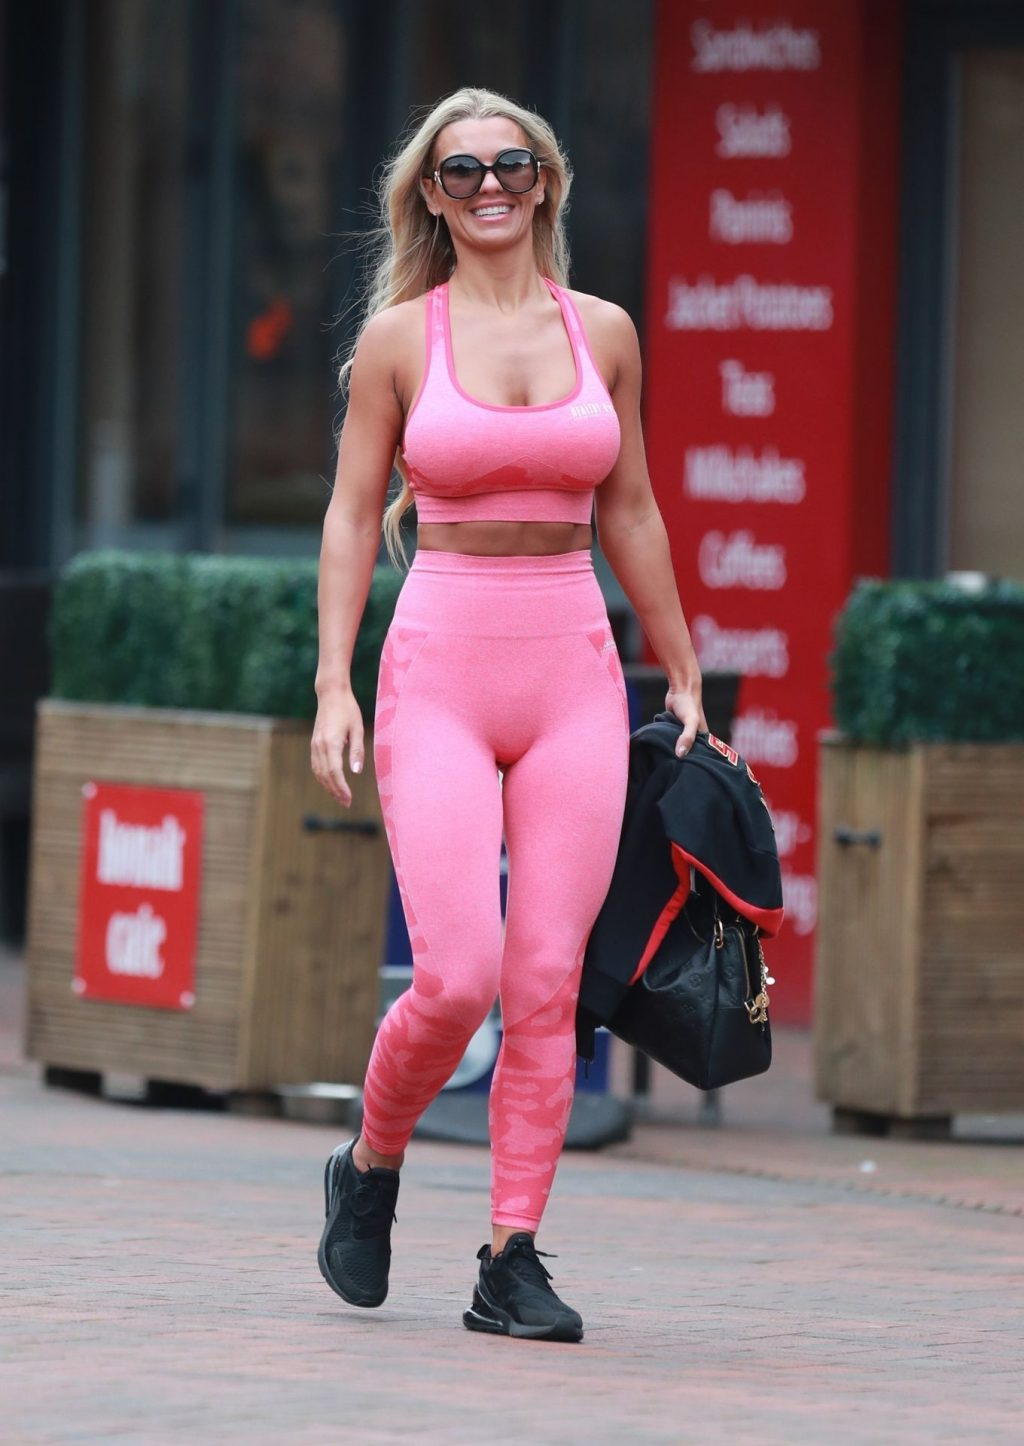 Christine McGuinness Sexy (24 Photos)